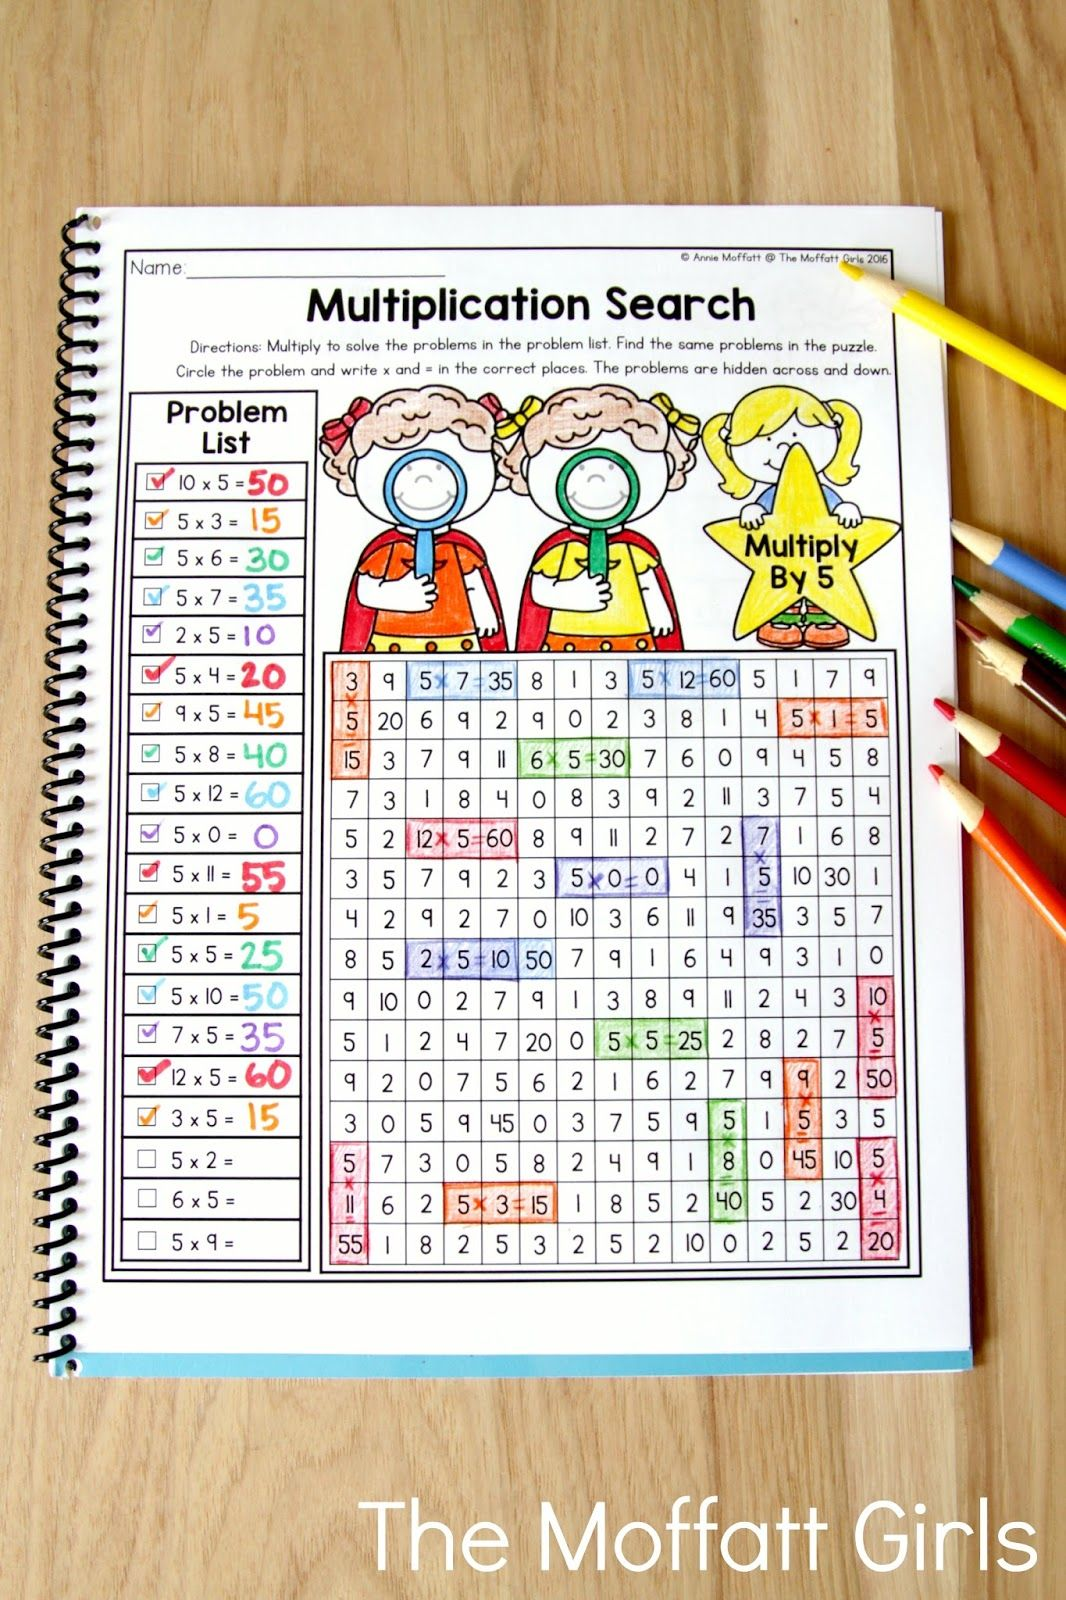 Multiplication Search Solve The Multiplication Problem